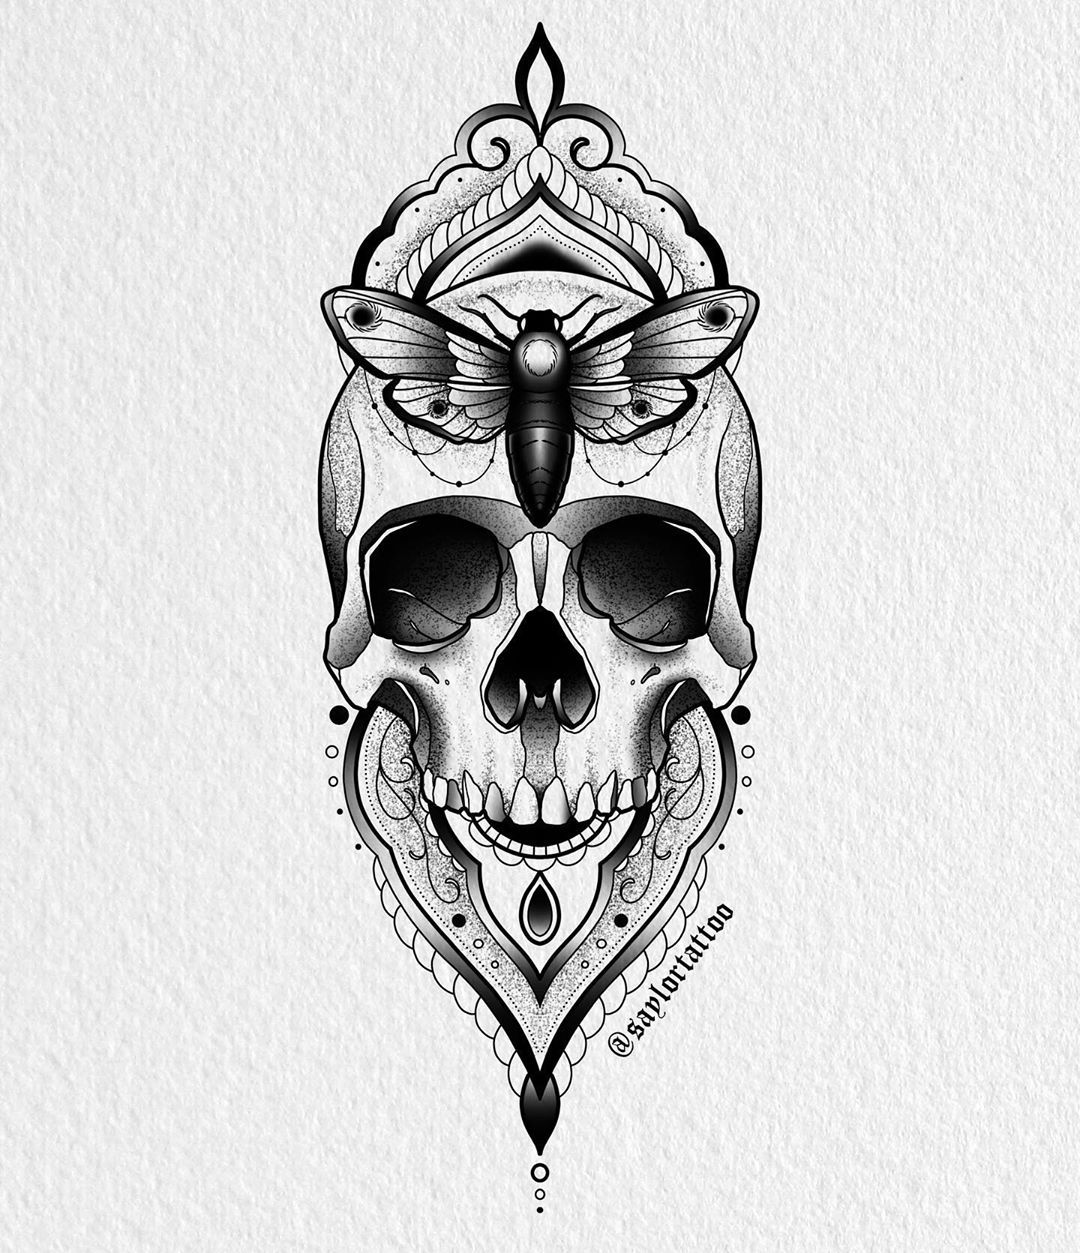 ✨Available. Dm if you'd like to claim this design to be tattooed next month. Deposit required, be PayPal ready.✨ #tattoo #tattooartist #valparaiso #valpo #valpotattoo #tattoodesign #skull #skulltattoo #digitalart #tattoosmart #art #illustration #design #blackwork #blackworkers #darkartists